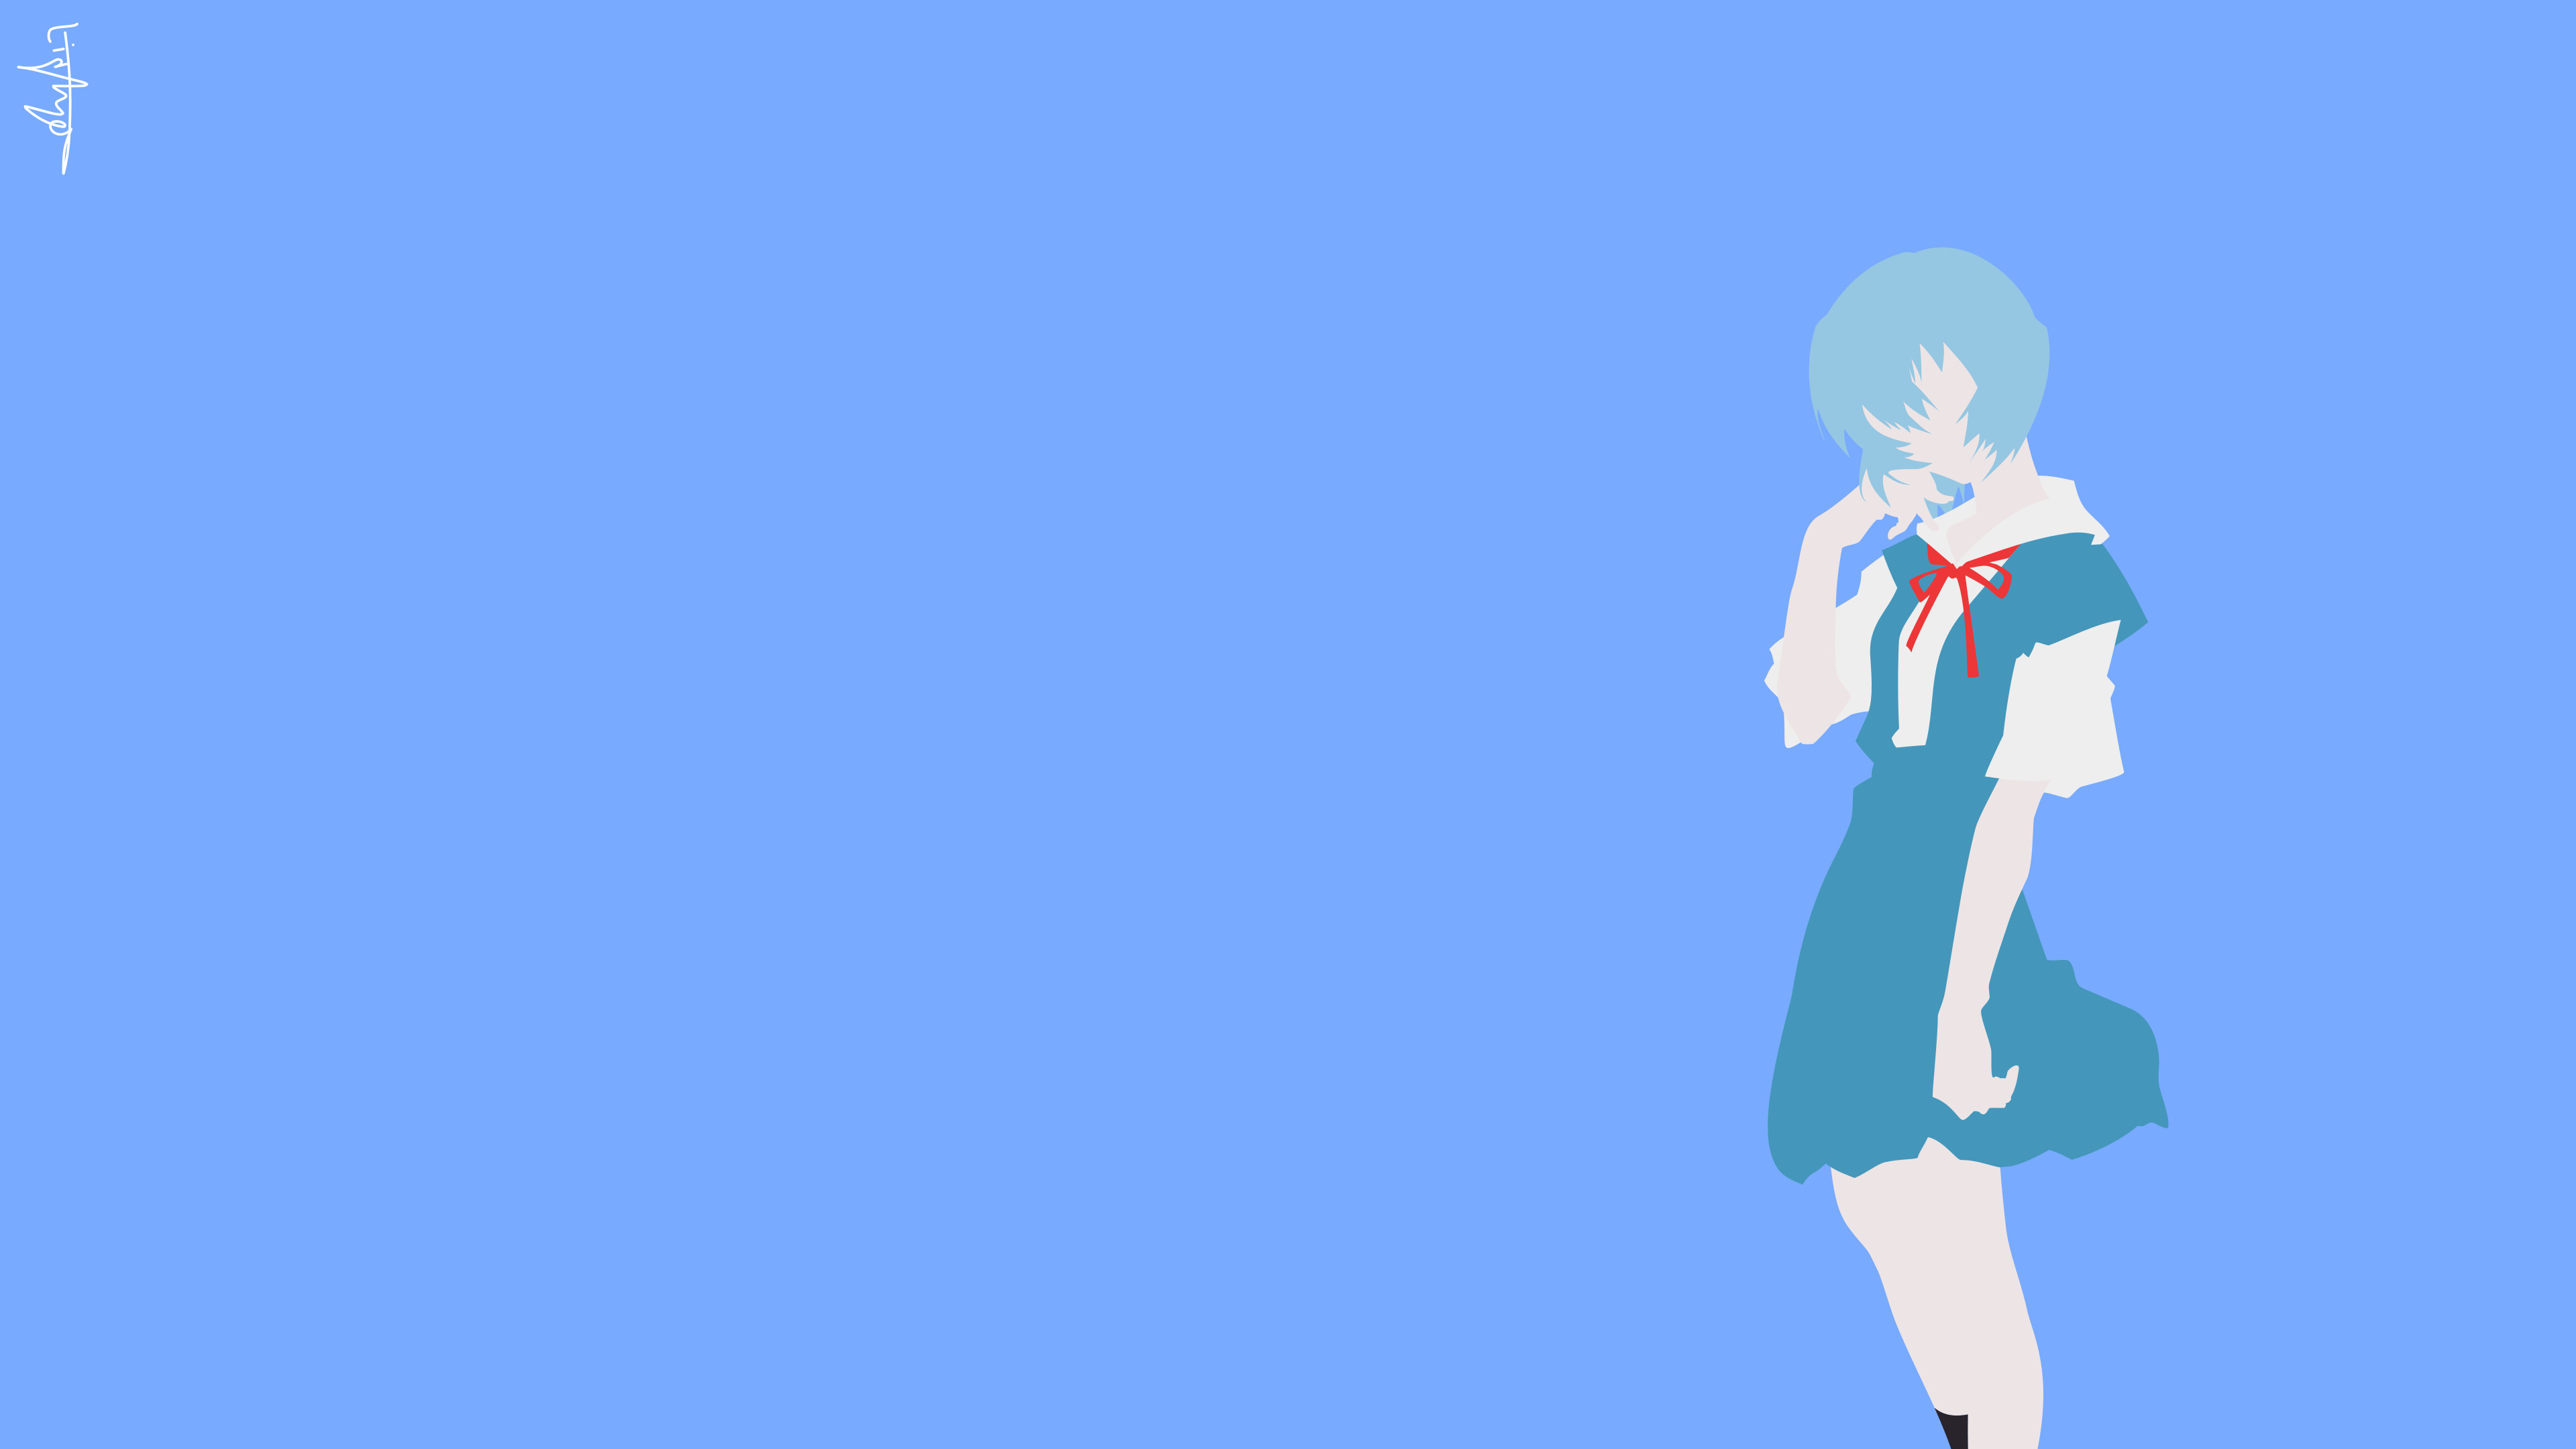 3840x2160 Rei Ayanami · HD Wallpaper | Background ID:829559